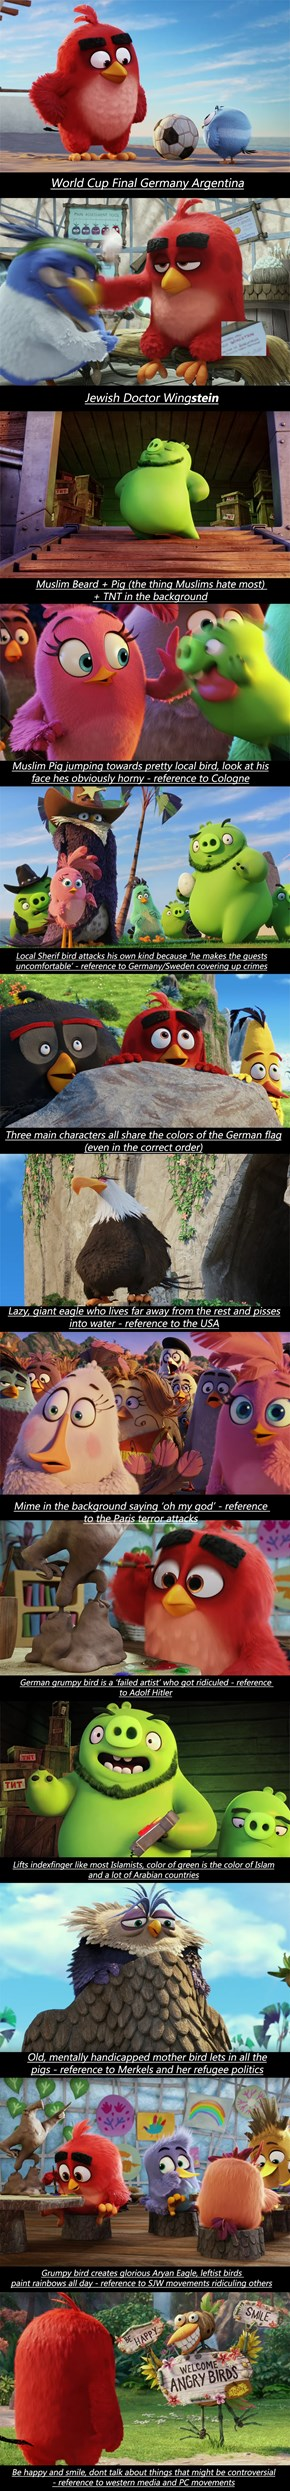 Angry Birds Movie Gives Some Insight Into Some Political Events